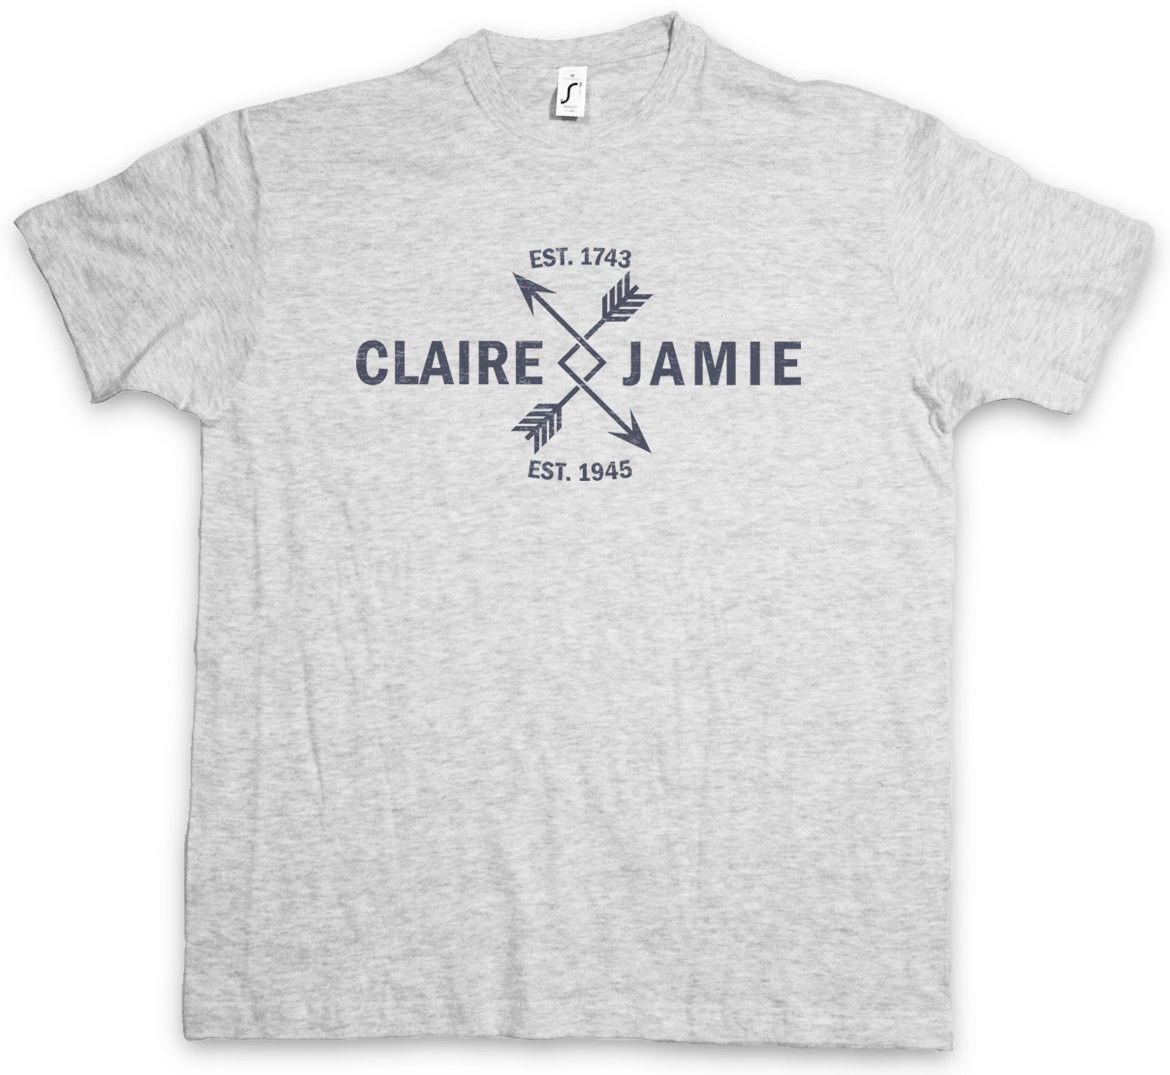 CLAIRE & JAMIE T-SHIRT Outlander Scots Scotland Fraser Randall Love Arrow Adults Casual Tee Shirt